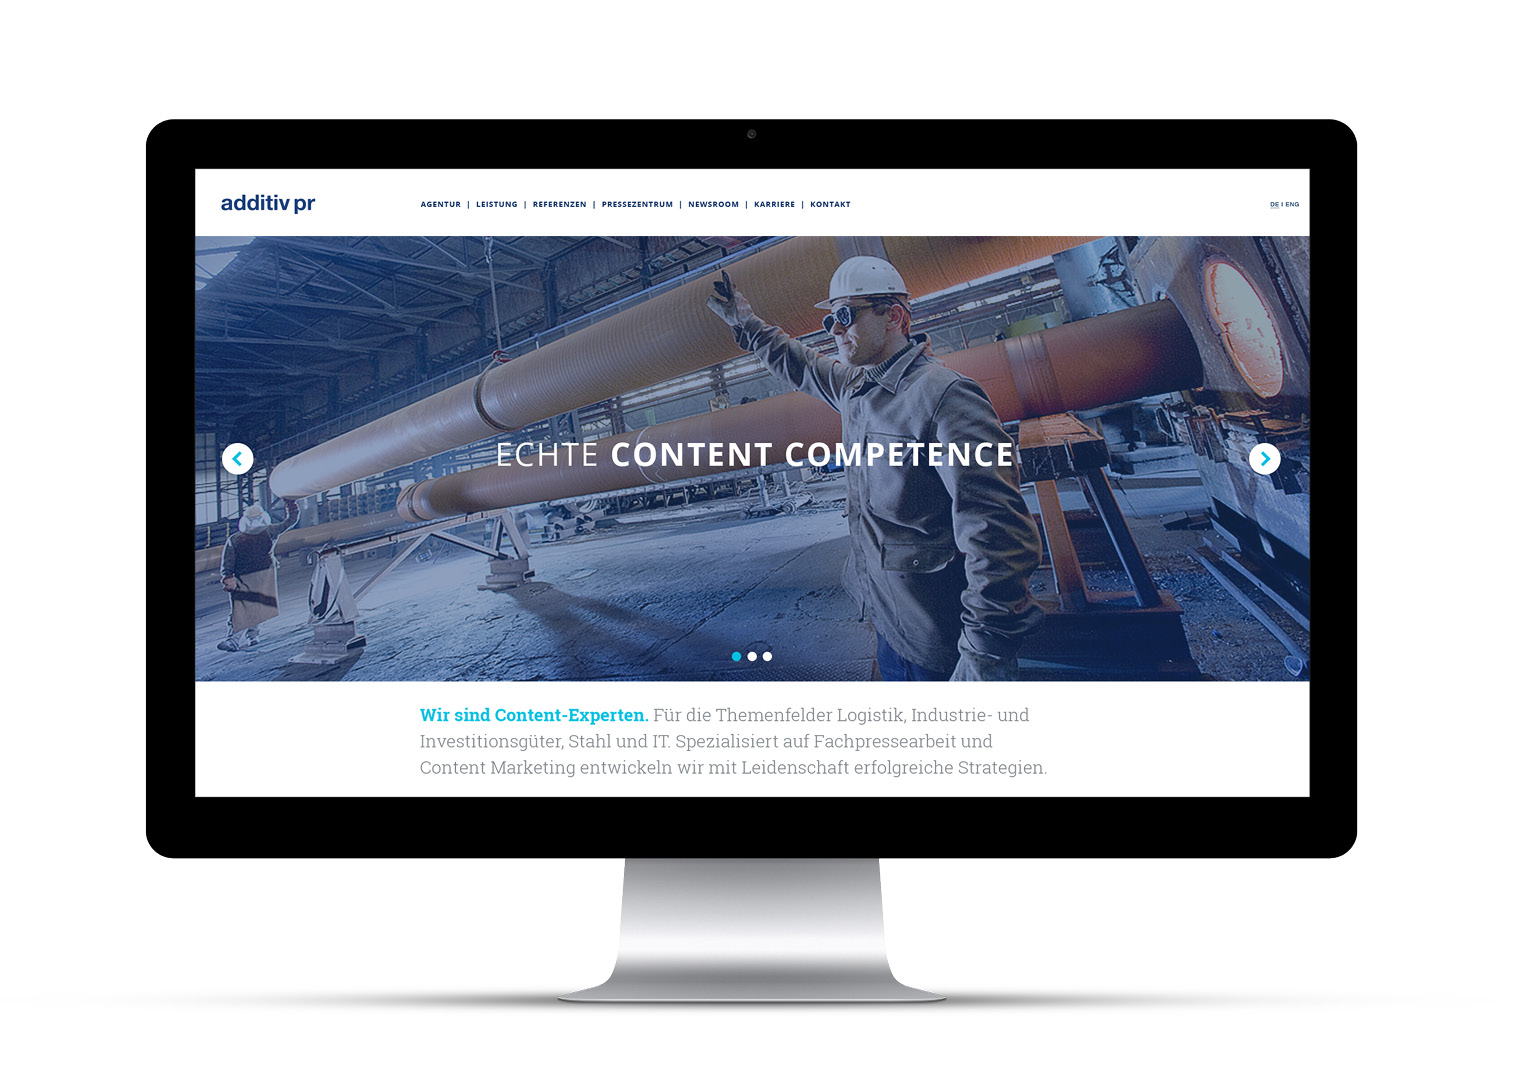 Webdesign for additiv pr, graphic design by sons of ipanema from cologne.